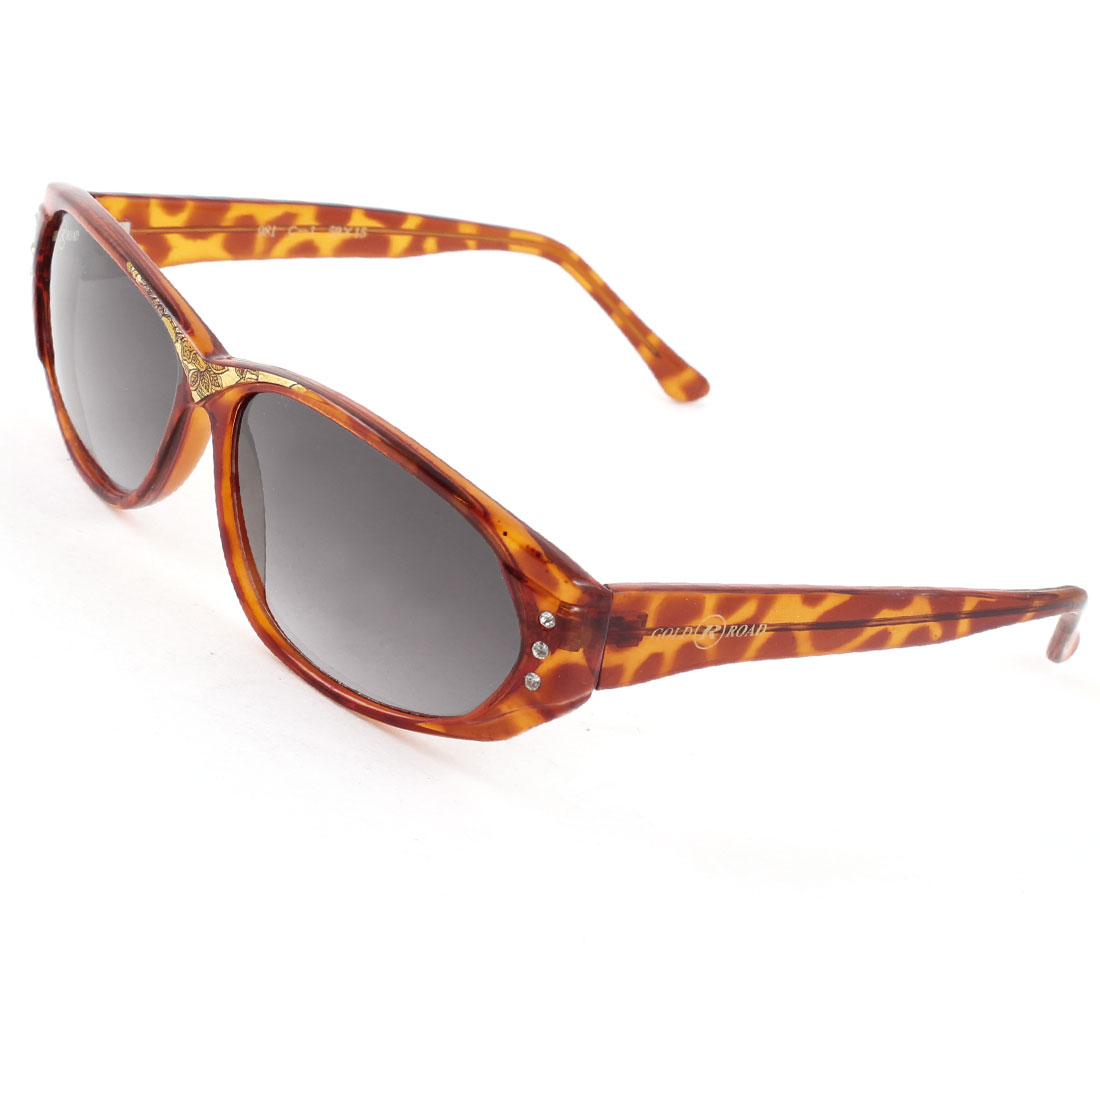 Single Bridge Brown Leopard Pattern Arms Full Frame Sunglasses Glasses for Women